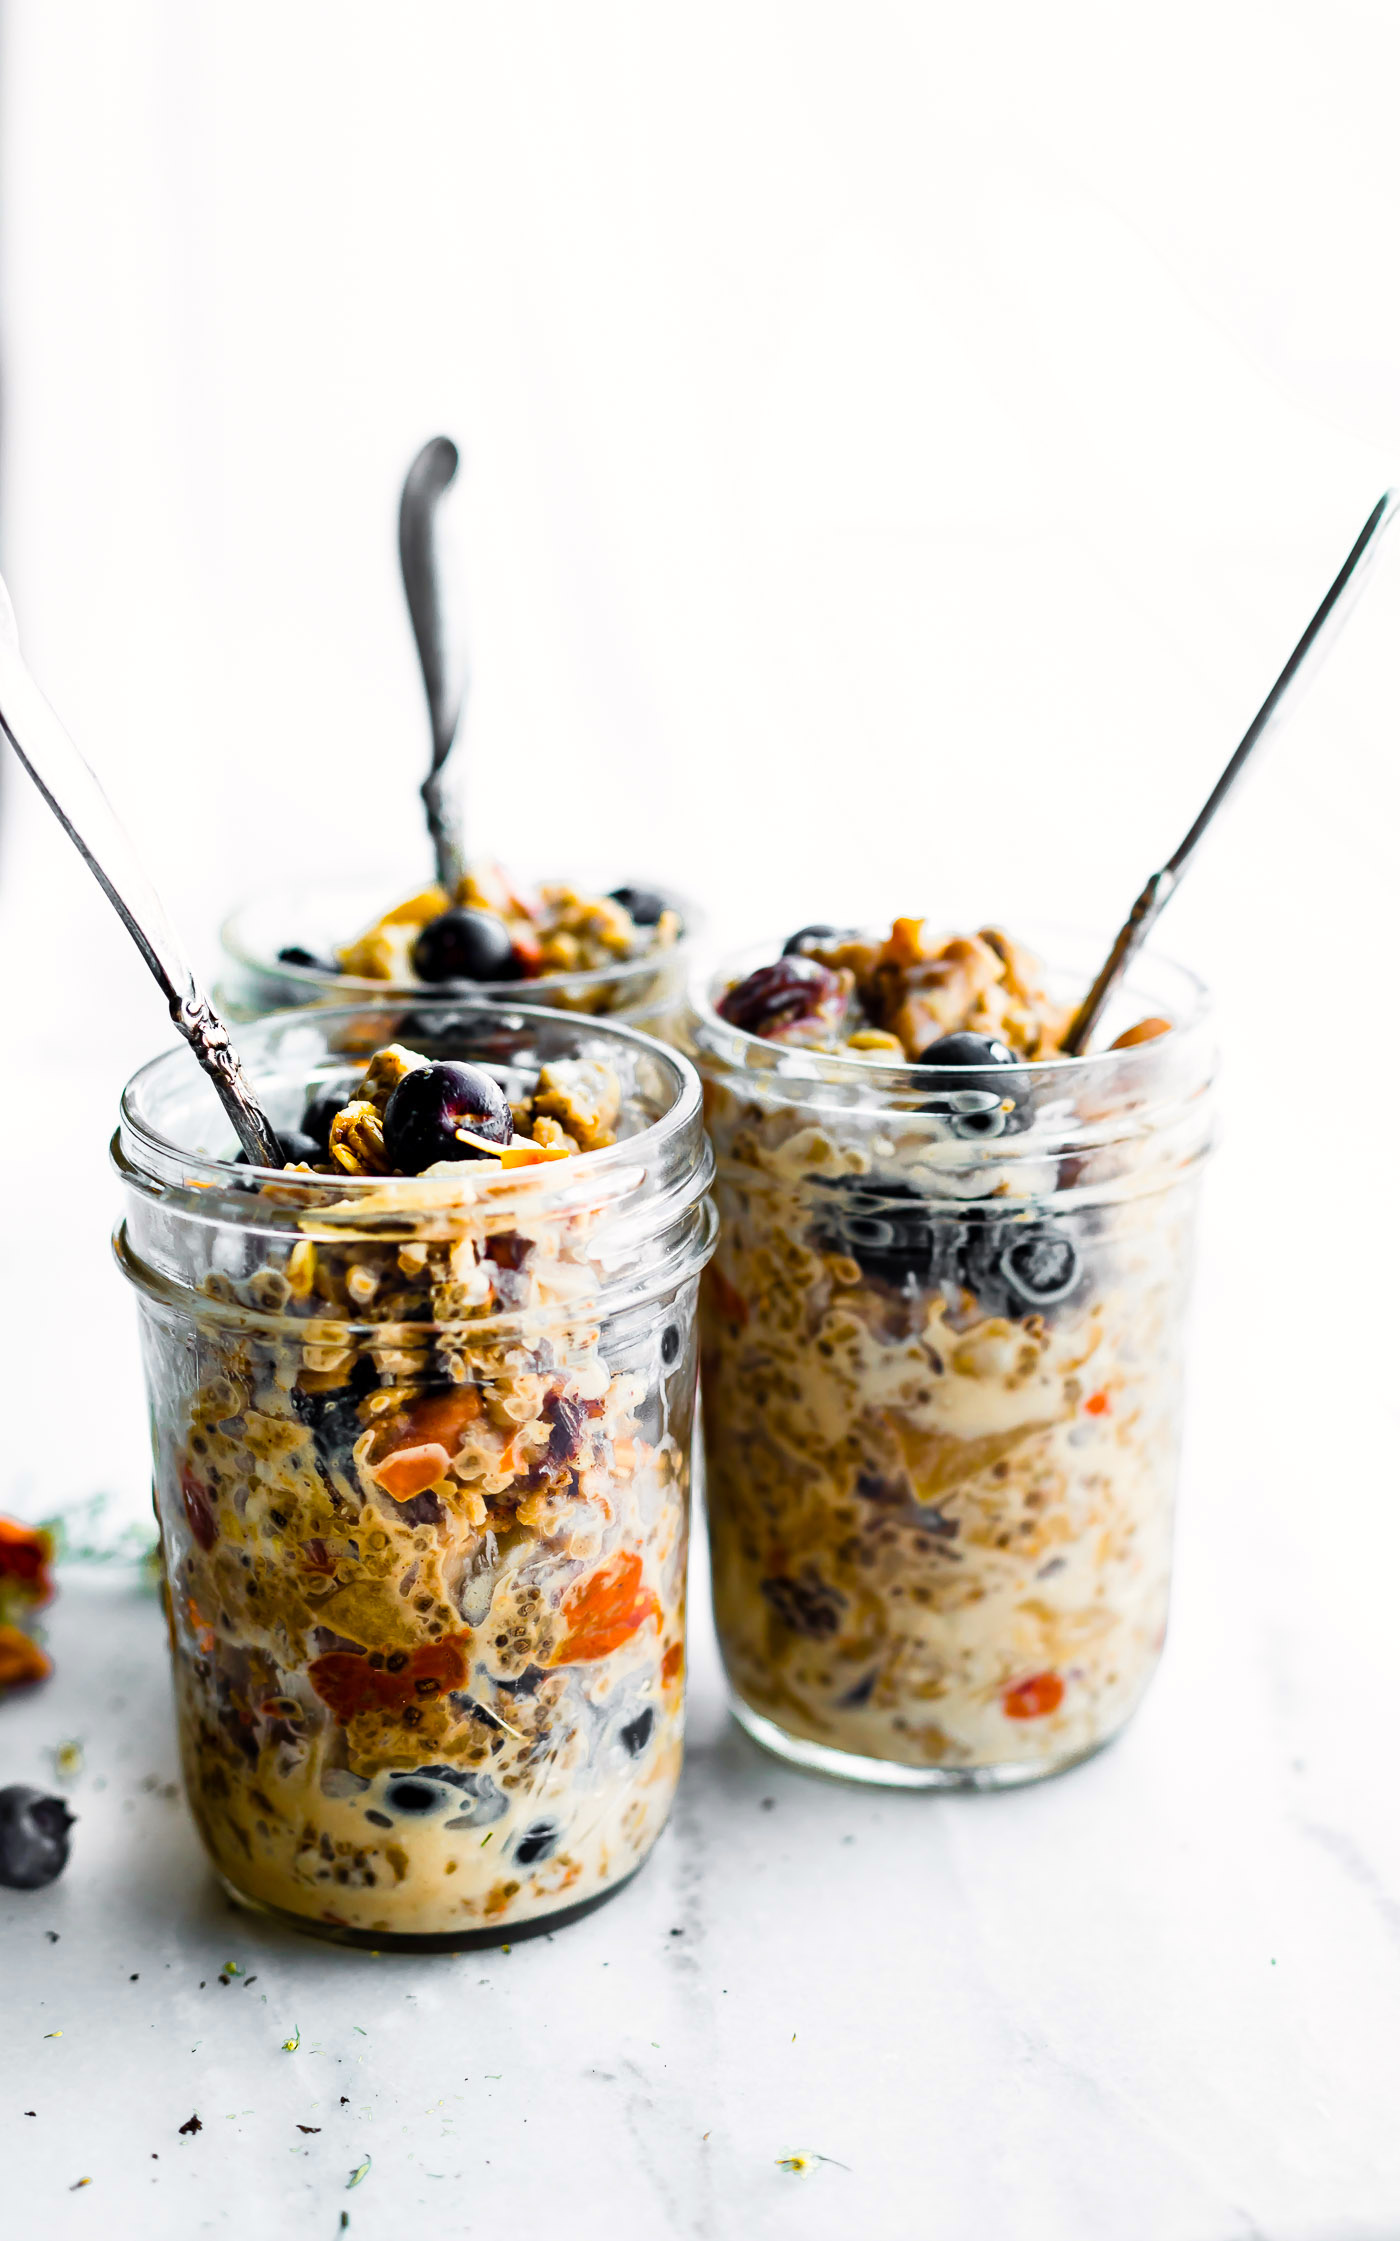 Superfood Instant Pot Oatmeal in a Jar! A healthy breakfast meal prep recipe or breakfast in to-go! This 10 minute electric pressure oatmeal recipe is filled with superfoods; such as gluten free rolled oats, apples, walnuts, flaxseed, goji berries, and more. A wholesome breakfast made easy in a multi-cooker with  slow cooker and stove top options. Vegan friendly.